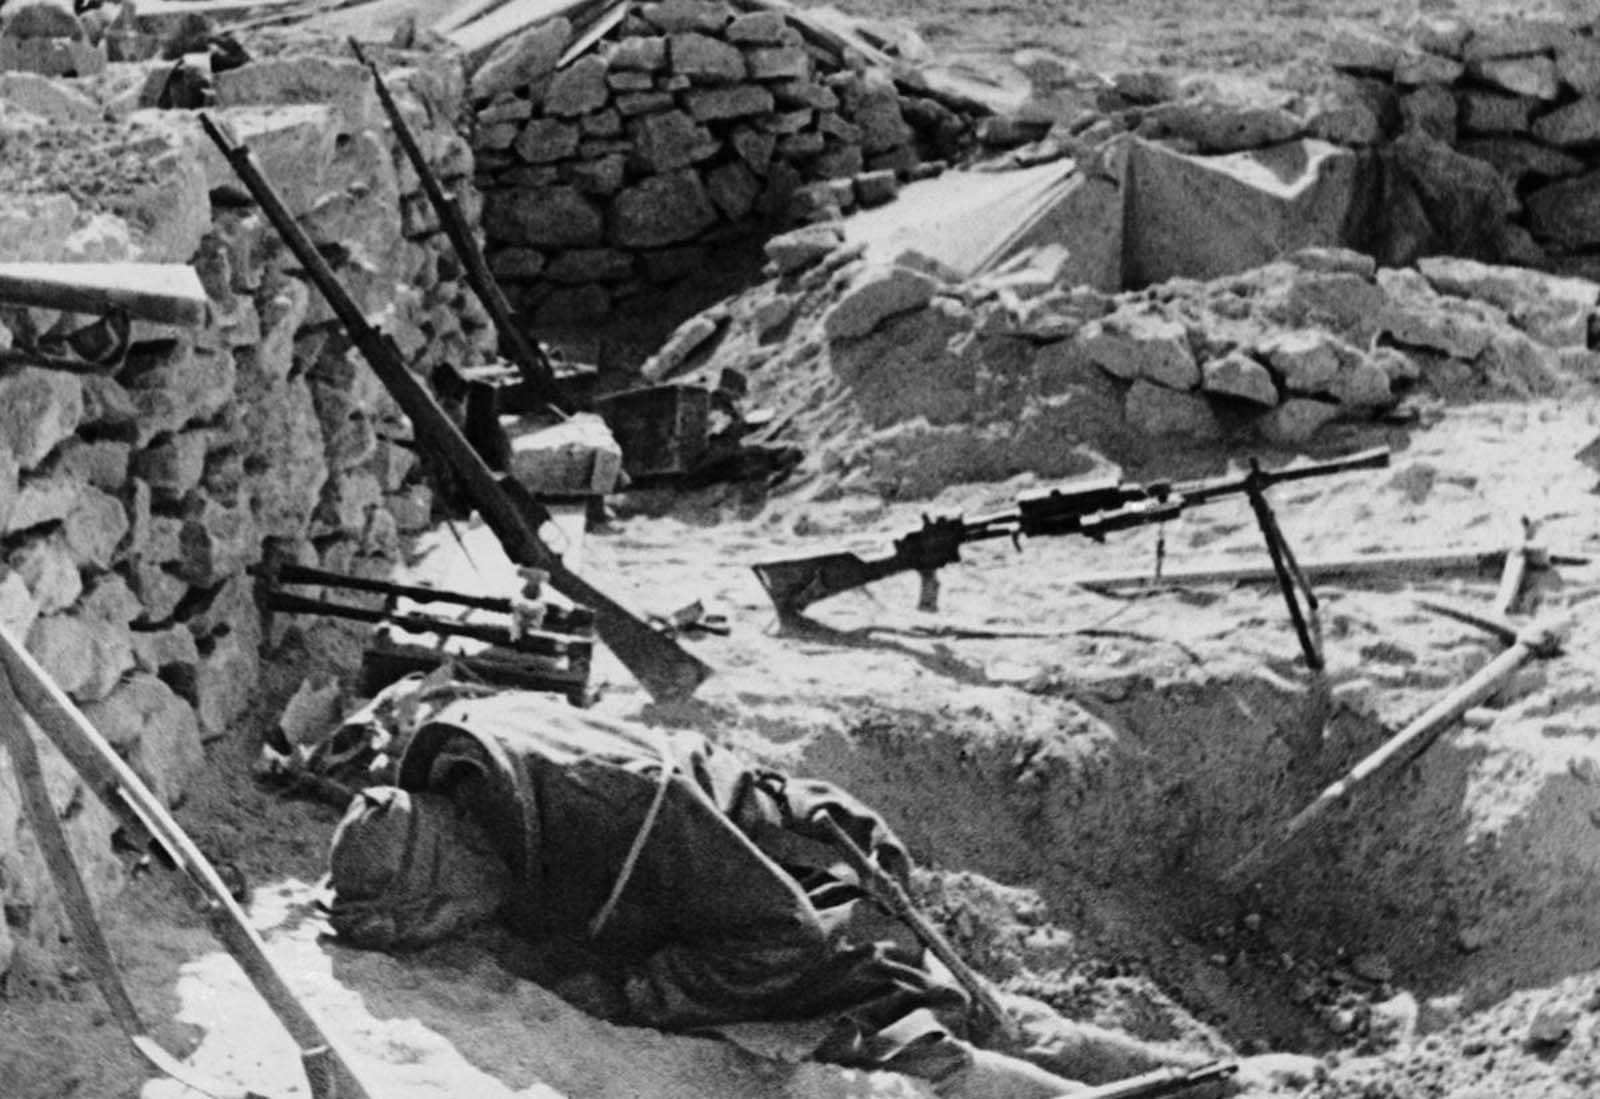 The body of an Italian soldier lies where he fell during battle, in a stone-walled fort somewhere in the West Libyan desert, on Febrary 11, 1941.